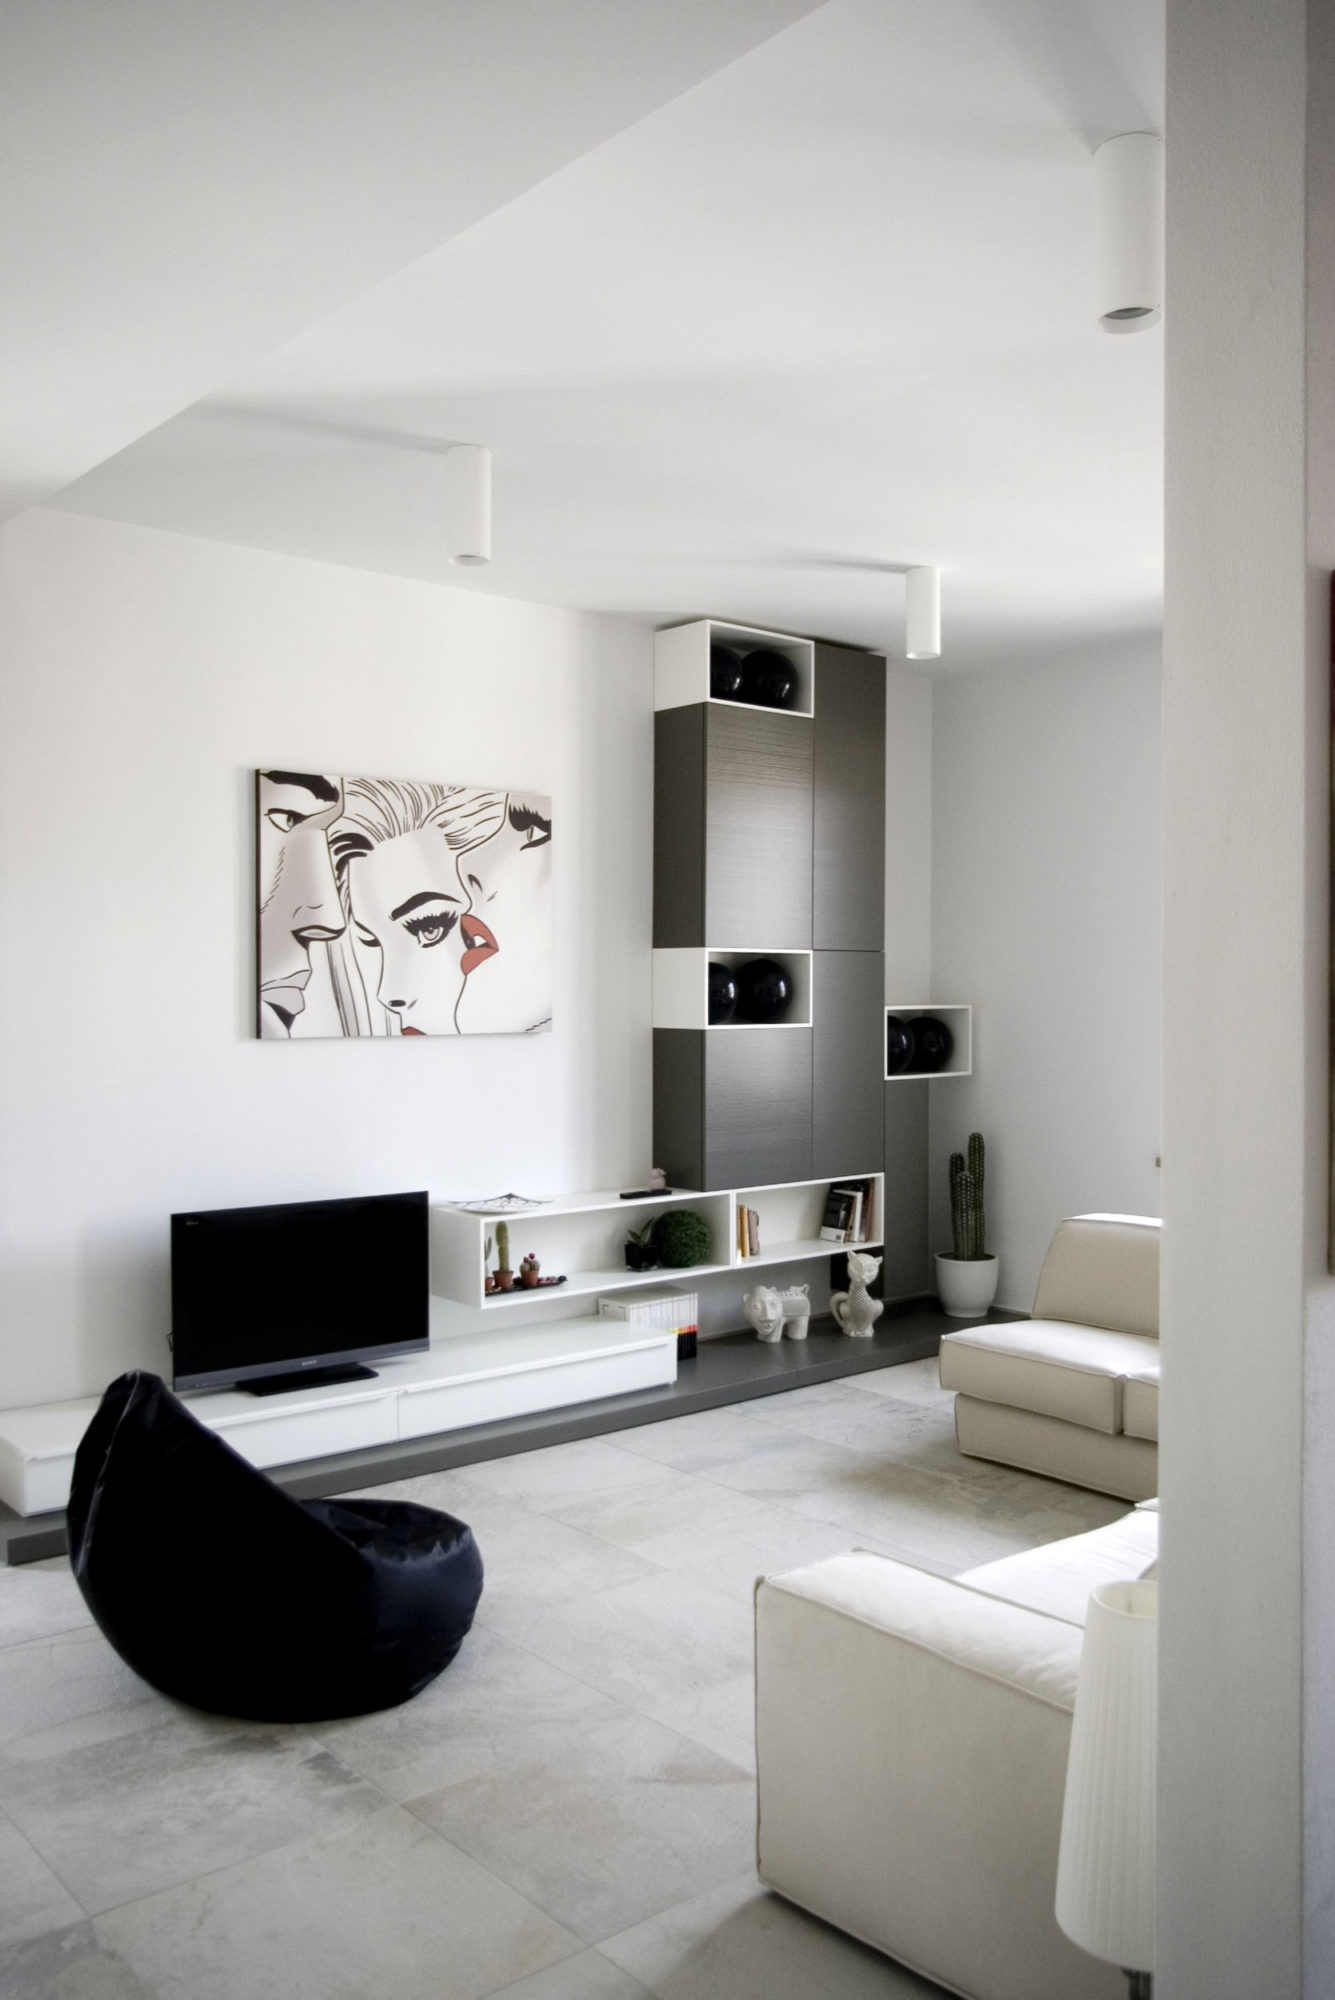 Minimalist interior by msx2 architettura for Minimalist apartment living room